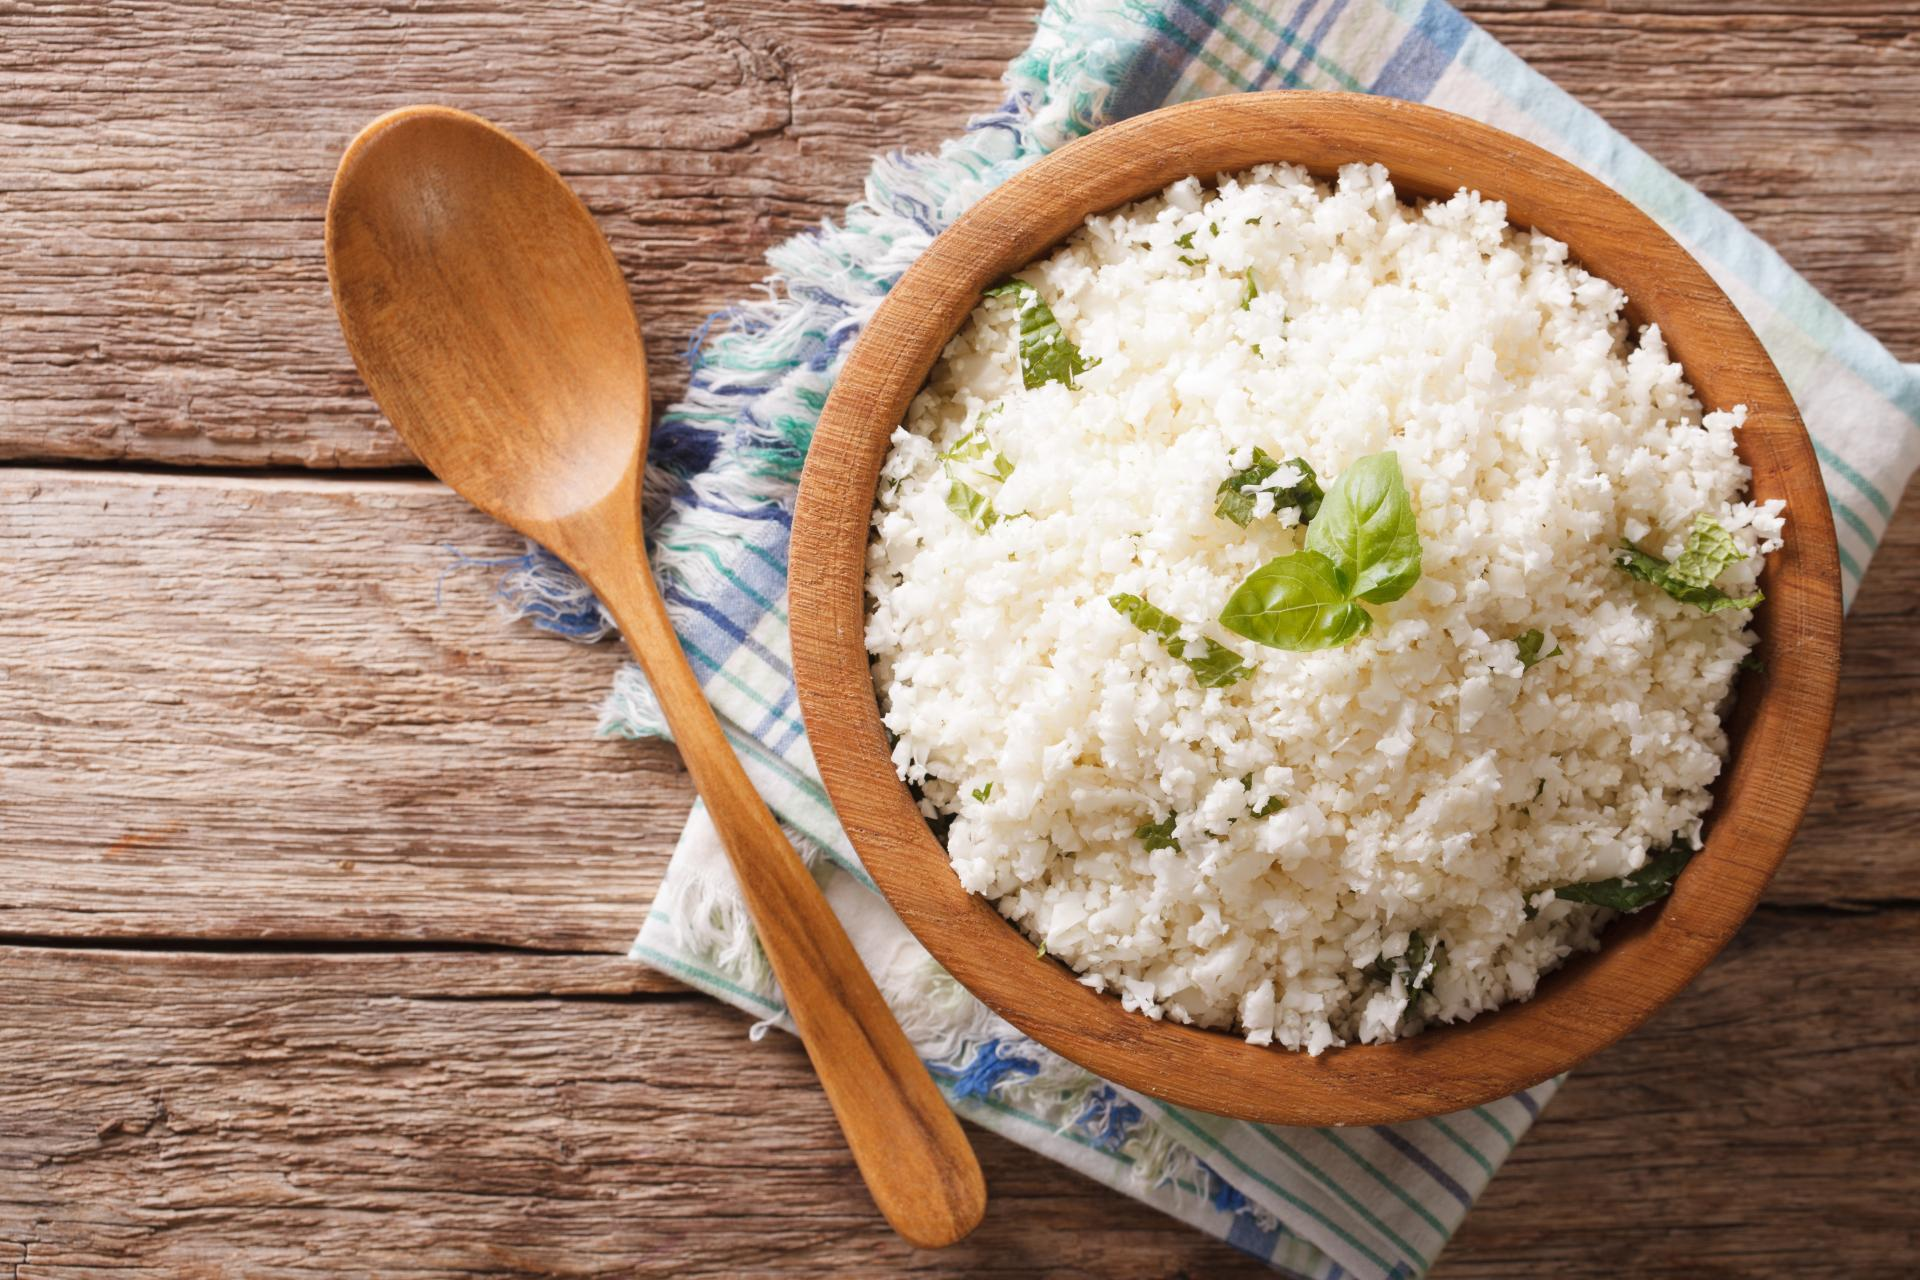 Why Cauliflower Fried Rice Is a Natural Alternative to Brown Rice